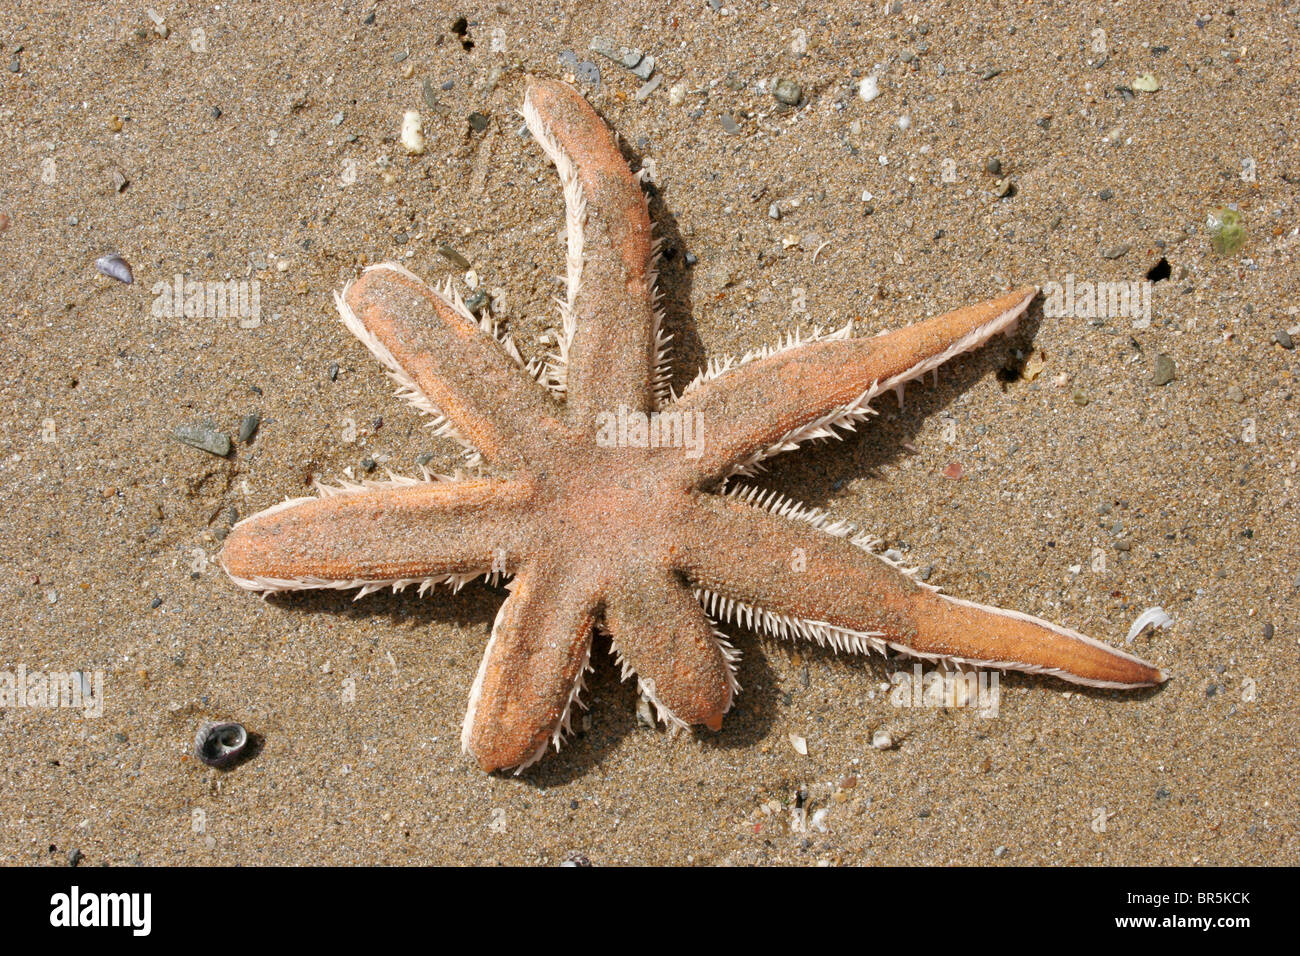 Seven-armed starfish (Luidia ciliaris : Luidiidae) exposed on sand at very low tide, UK. - Stock Image